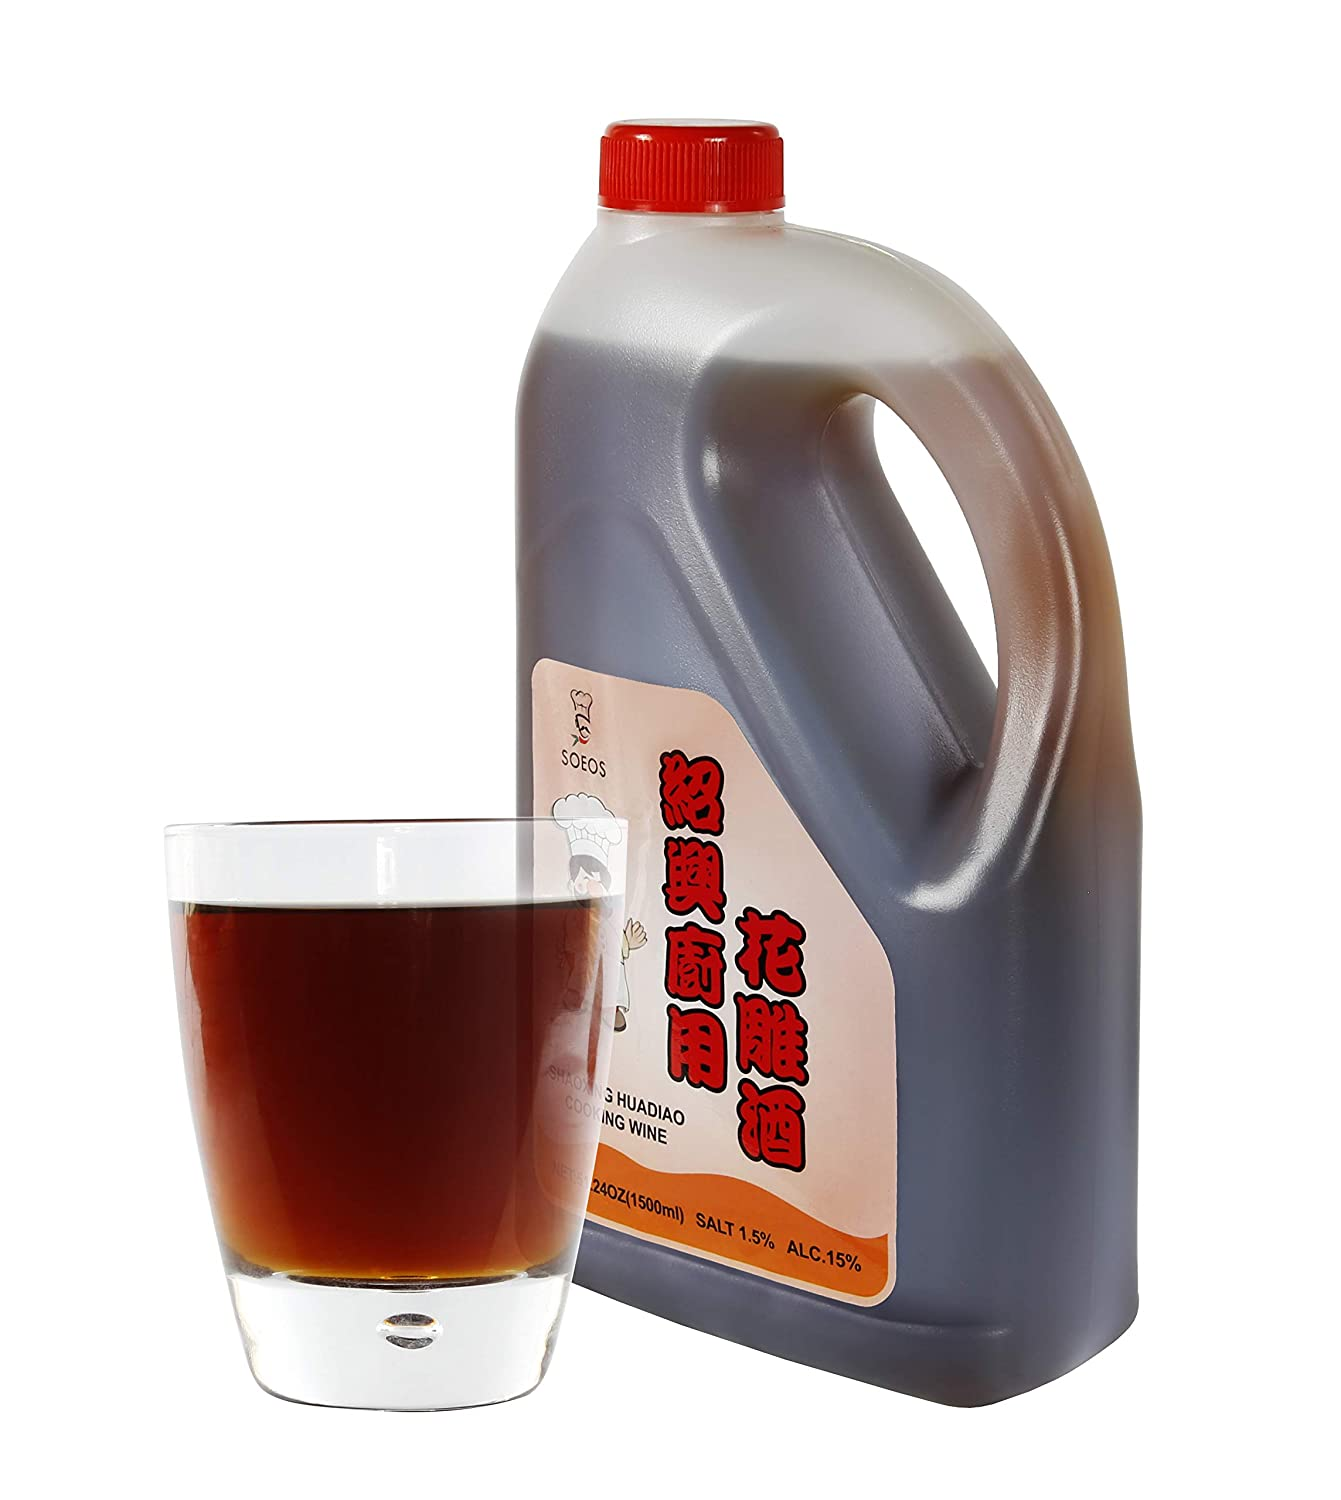 Soeos - Vino chino para cocinar arroz (750 ml), color rojo ...